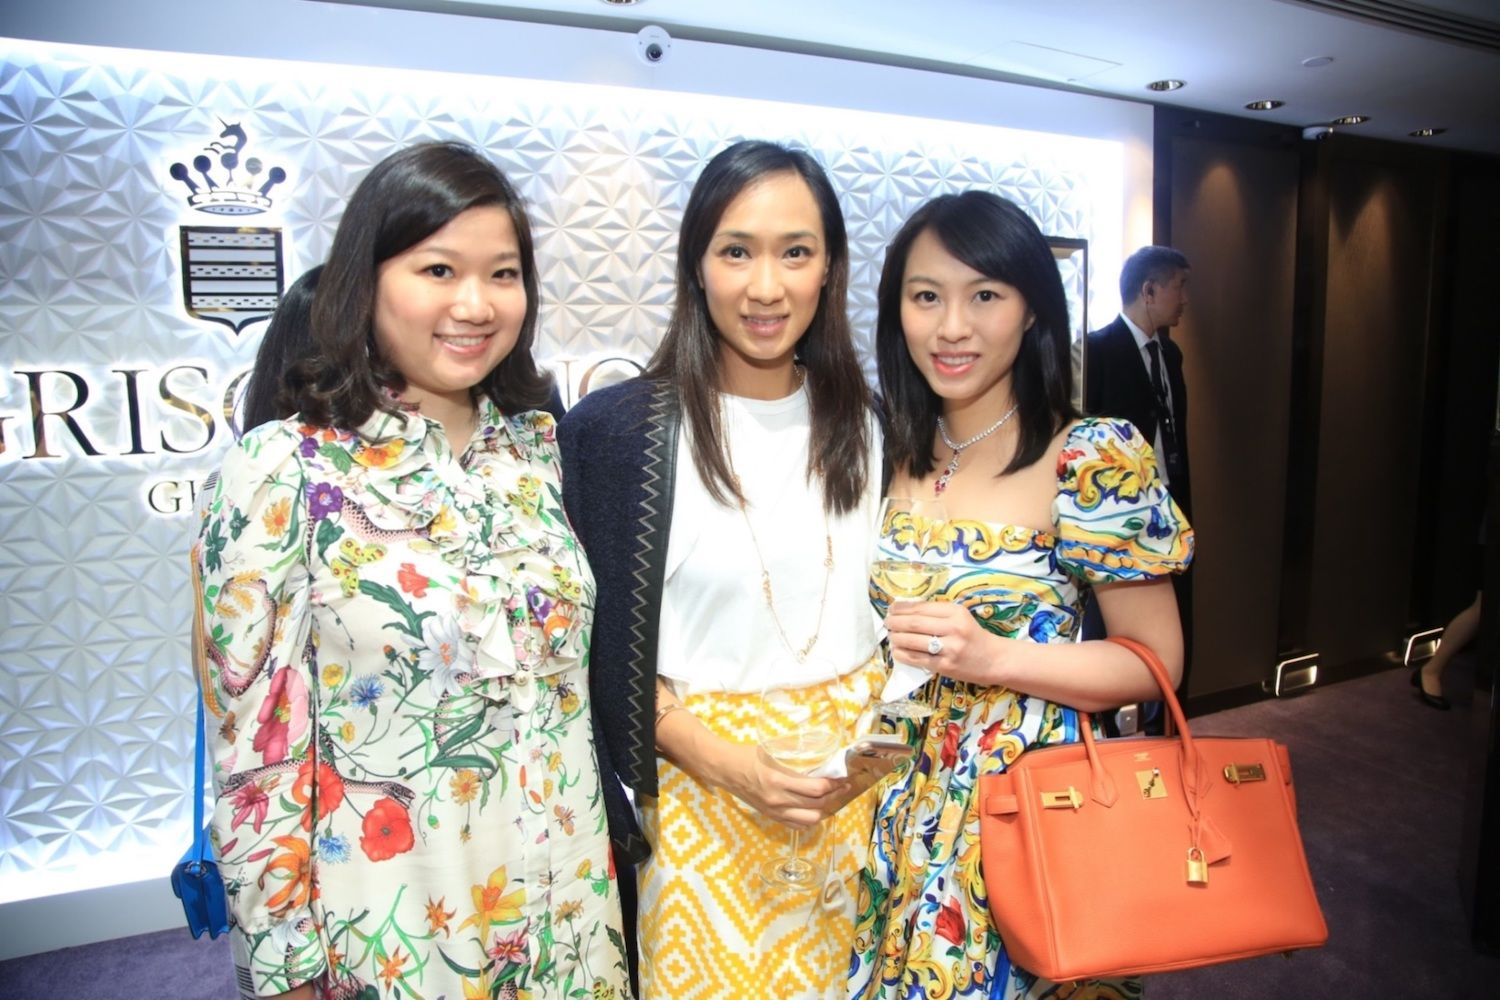 Carmen Choi, Natalie Chiu and Wendy Law